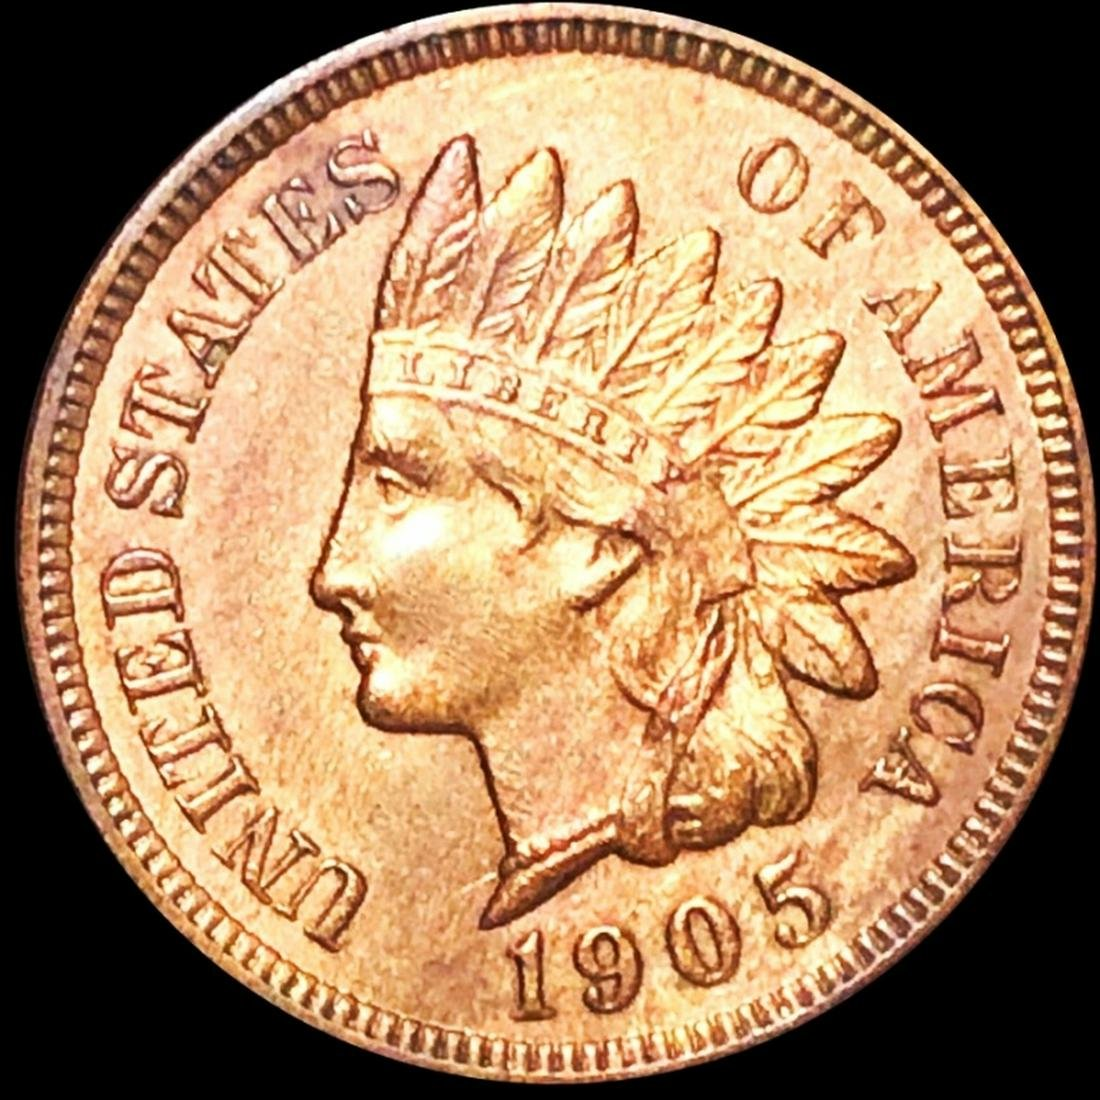 1905 Indian Head Penny UNCIRCULATED